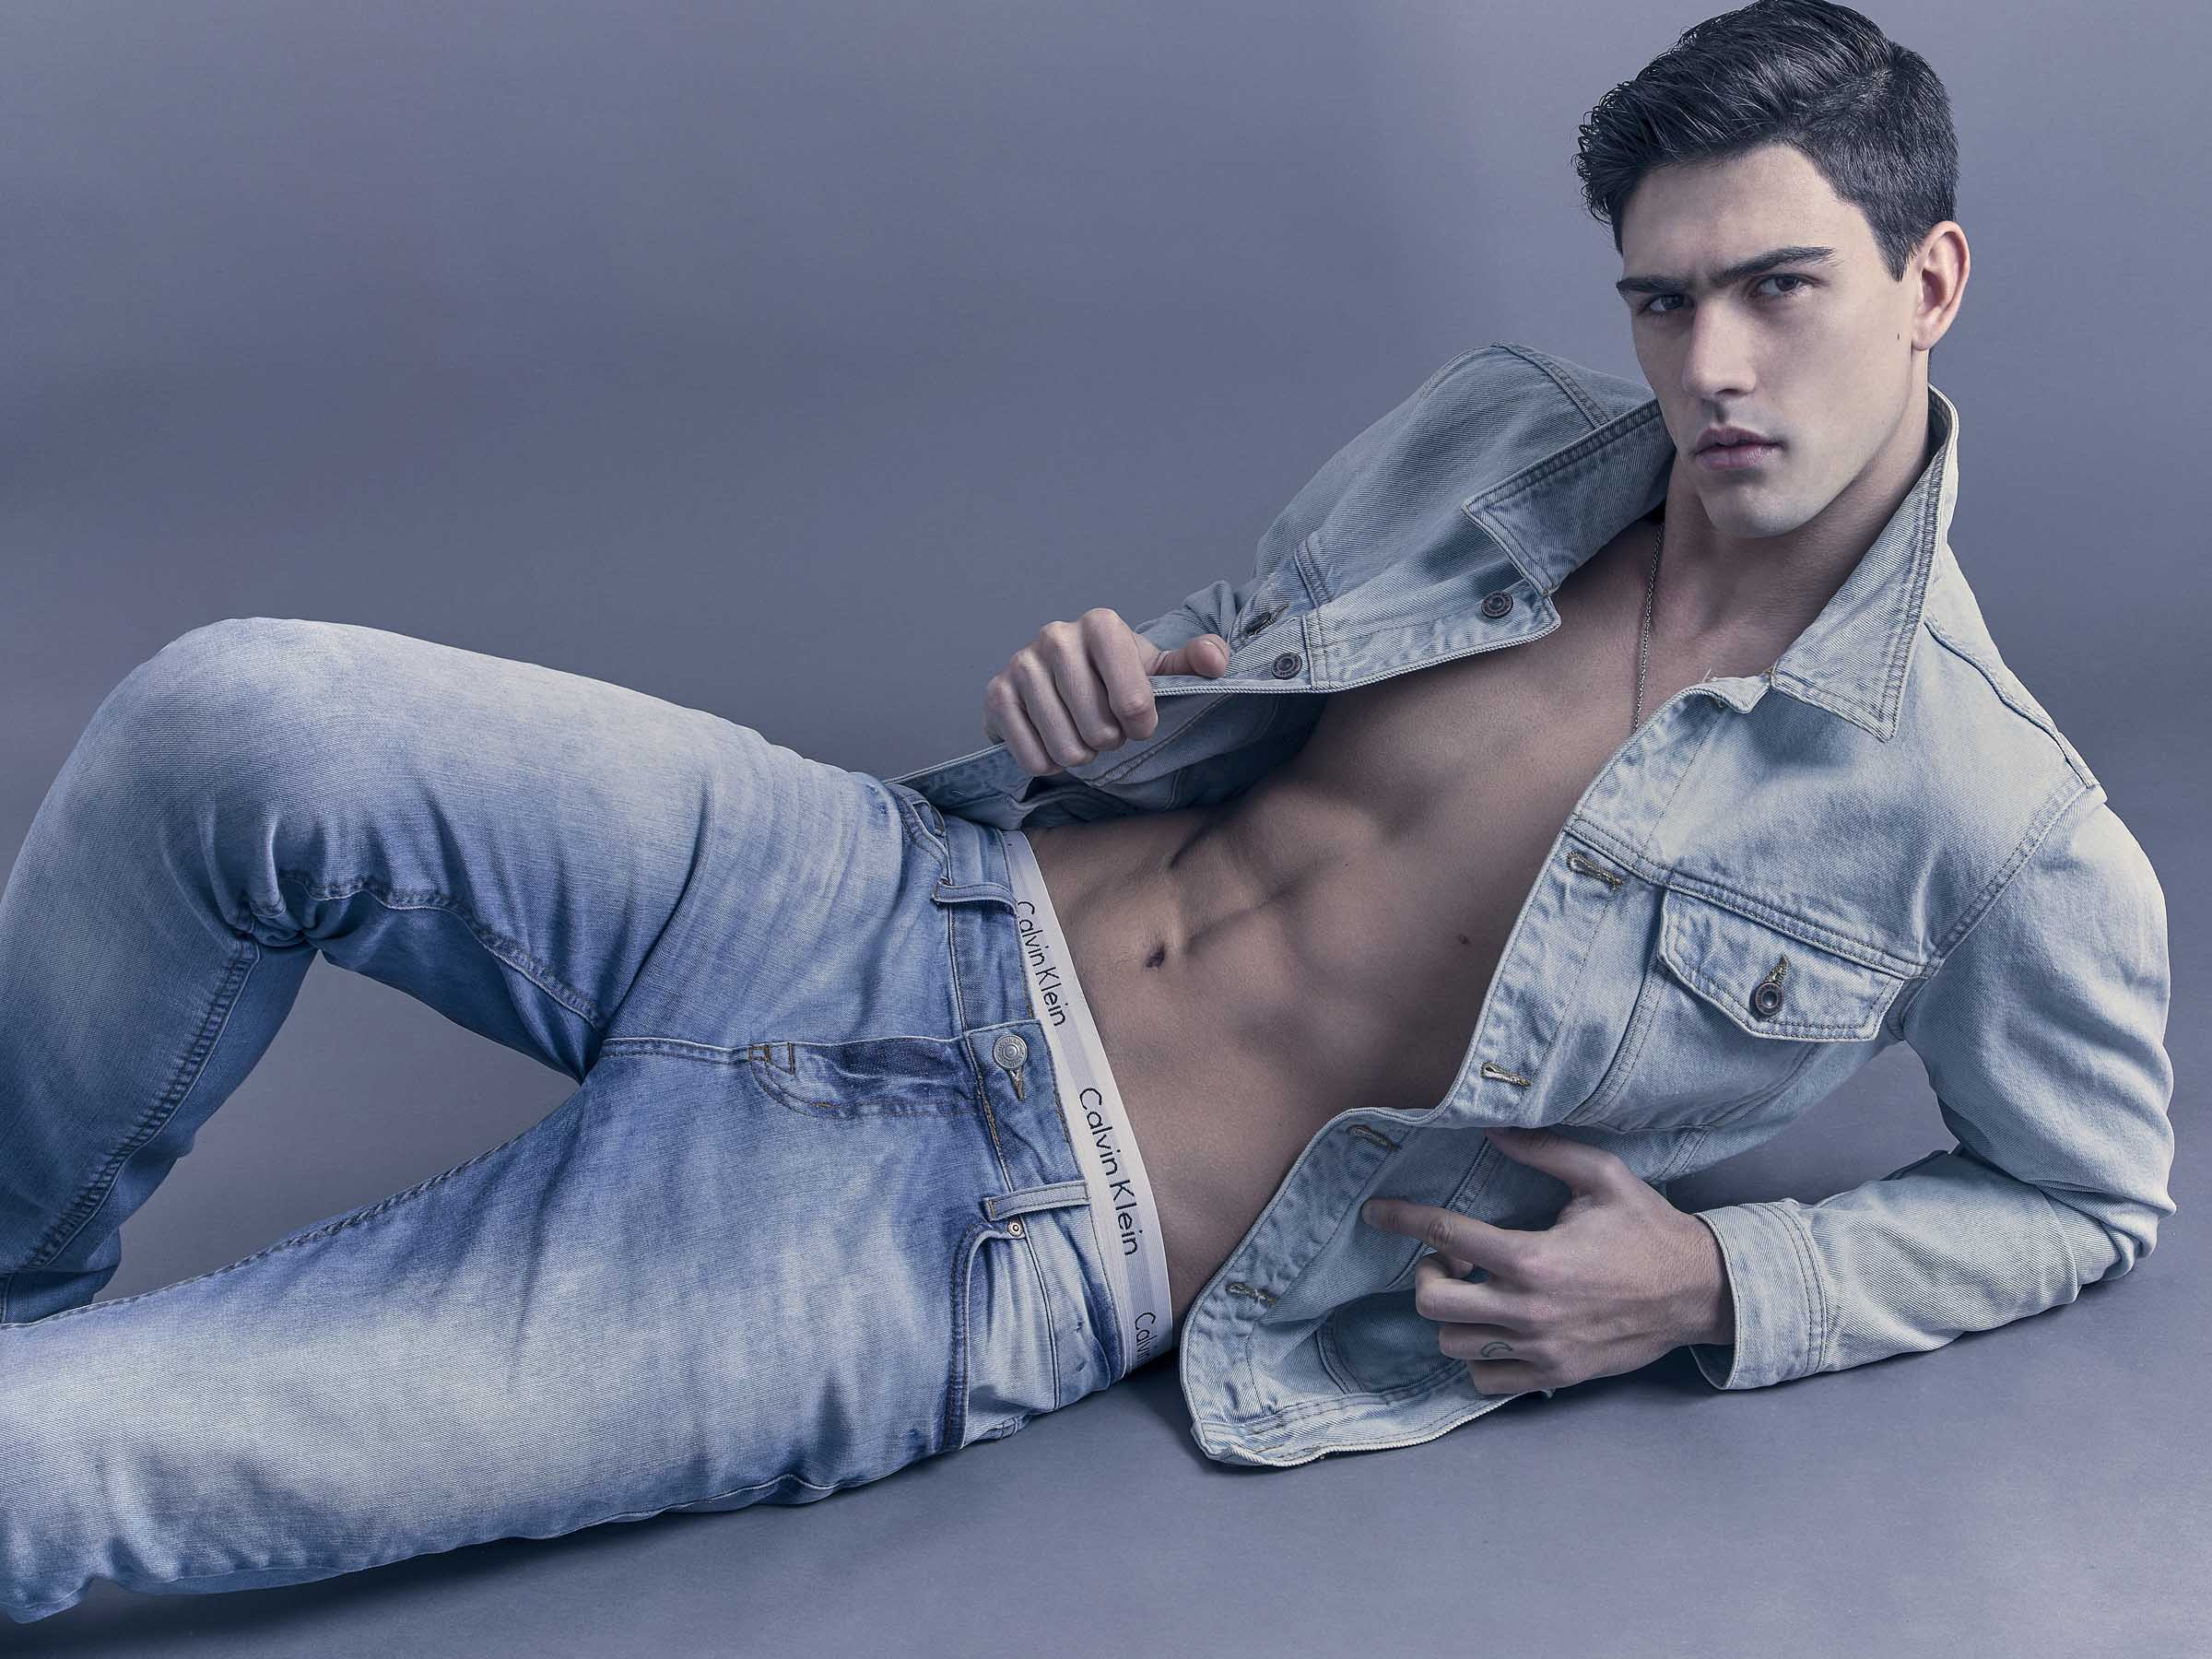 Phelipe Vergara by Giulio Cunico for Brazilian Male Model